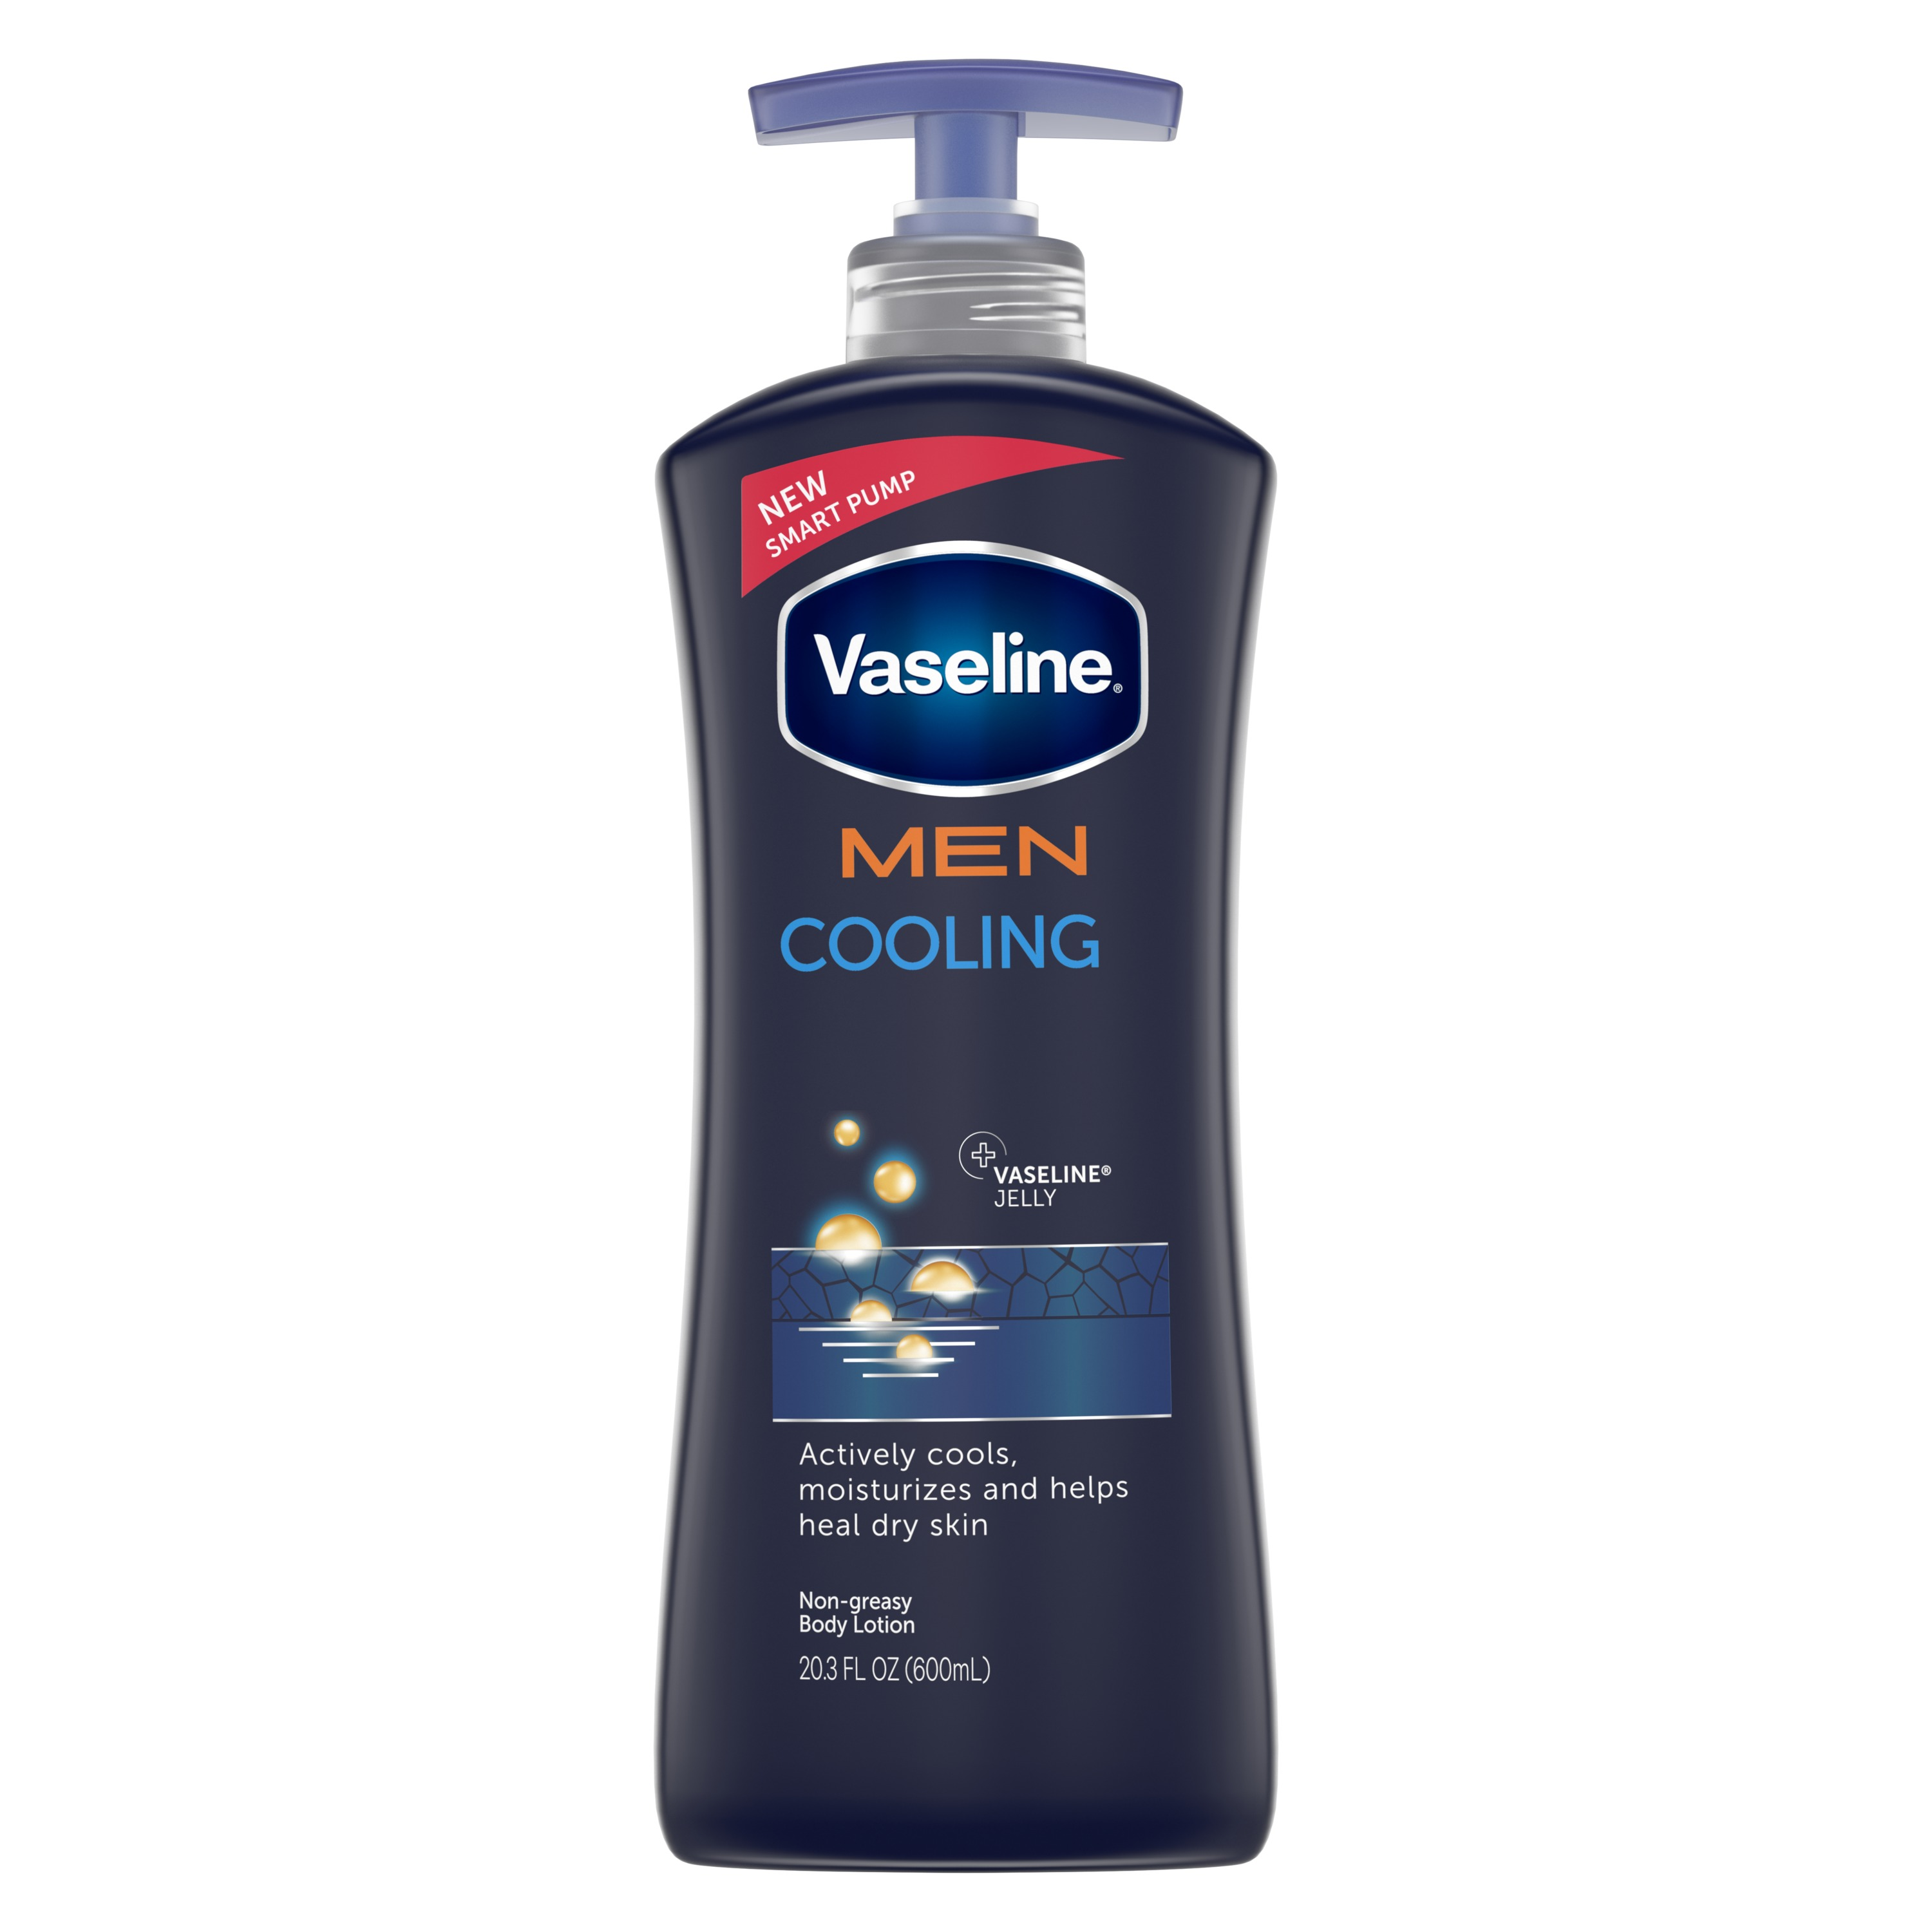 Vaseline Men Healing Moisture Body Lotion Fast Absorbing 20.3 oz